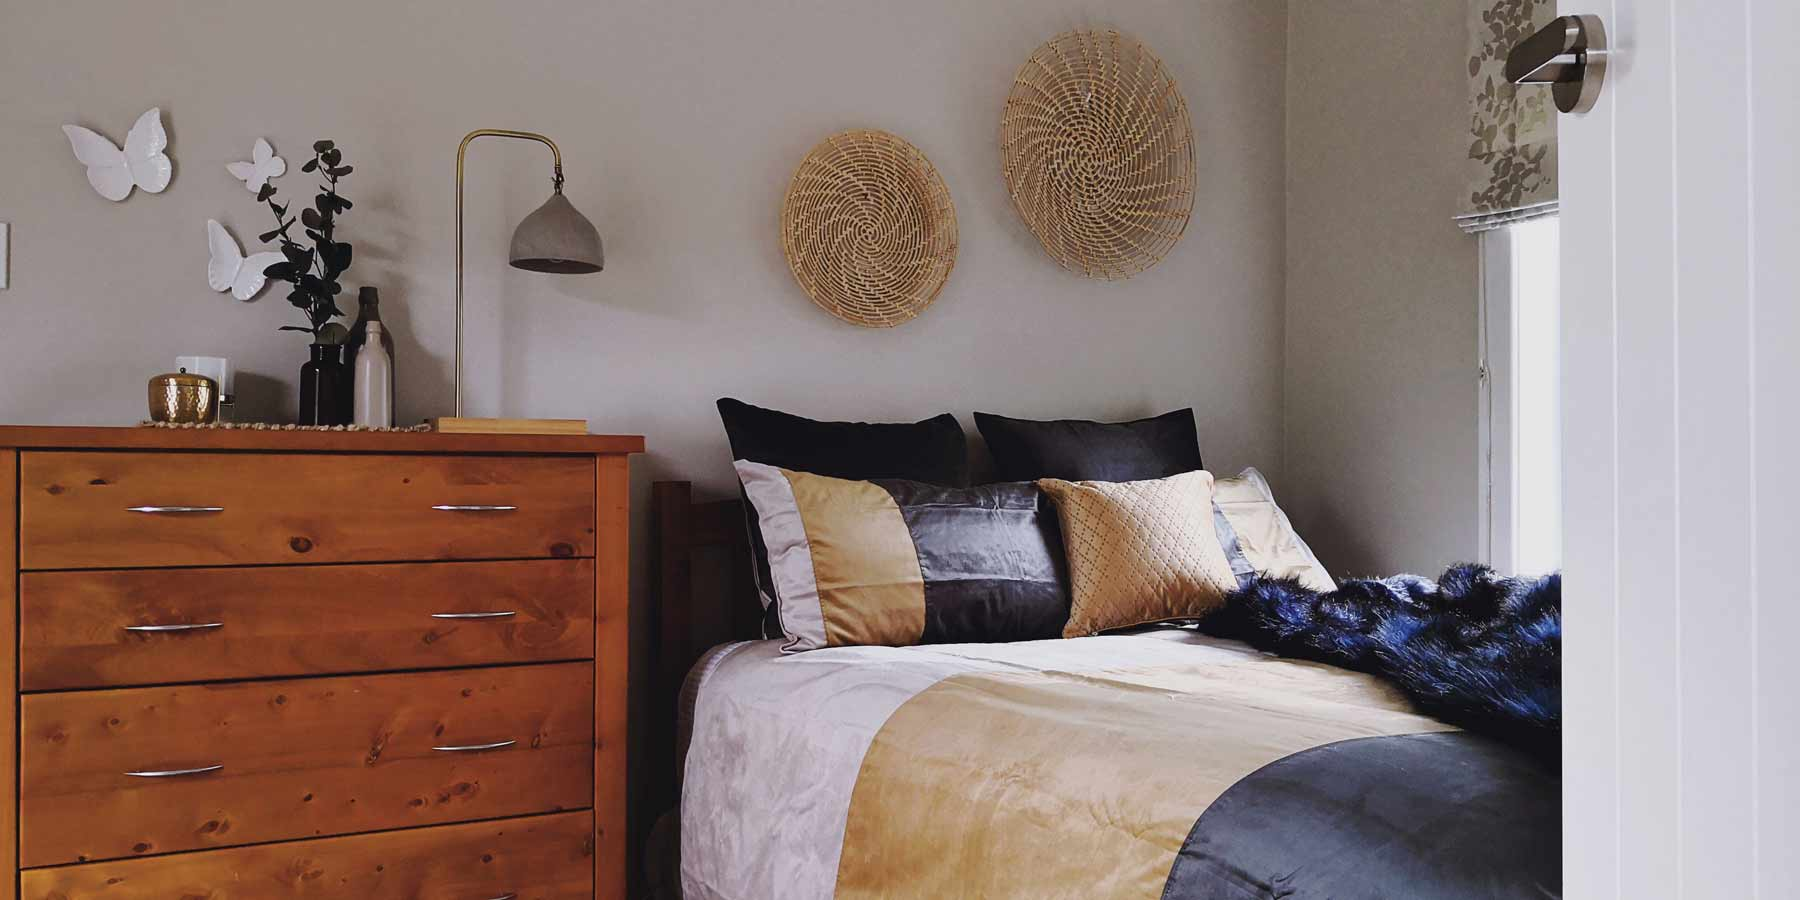 Home Decor – A Winter Bedroom Refesh